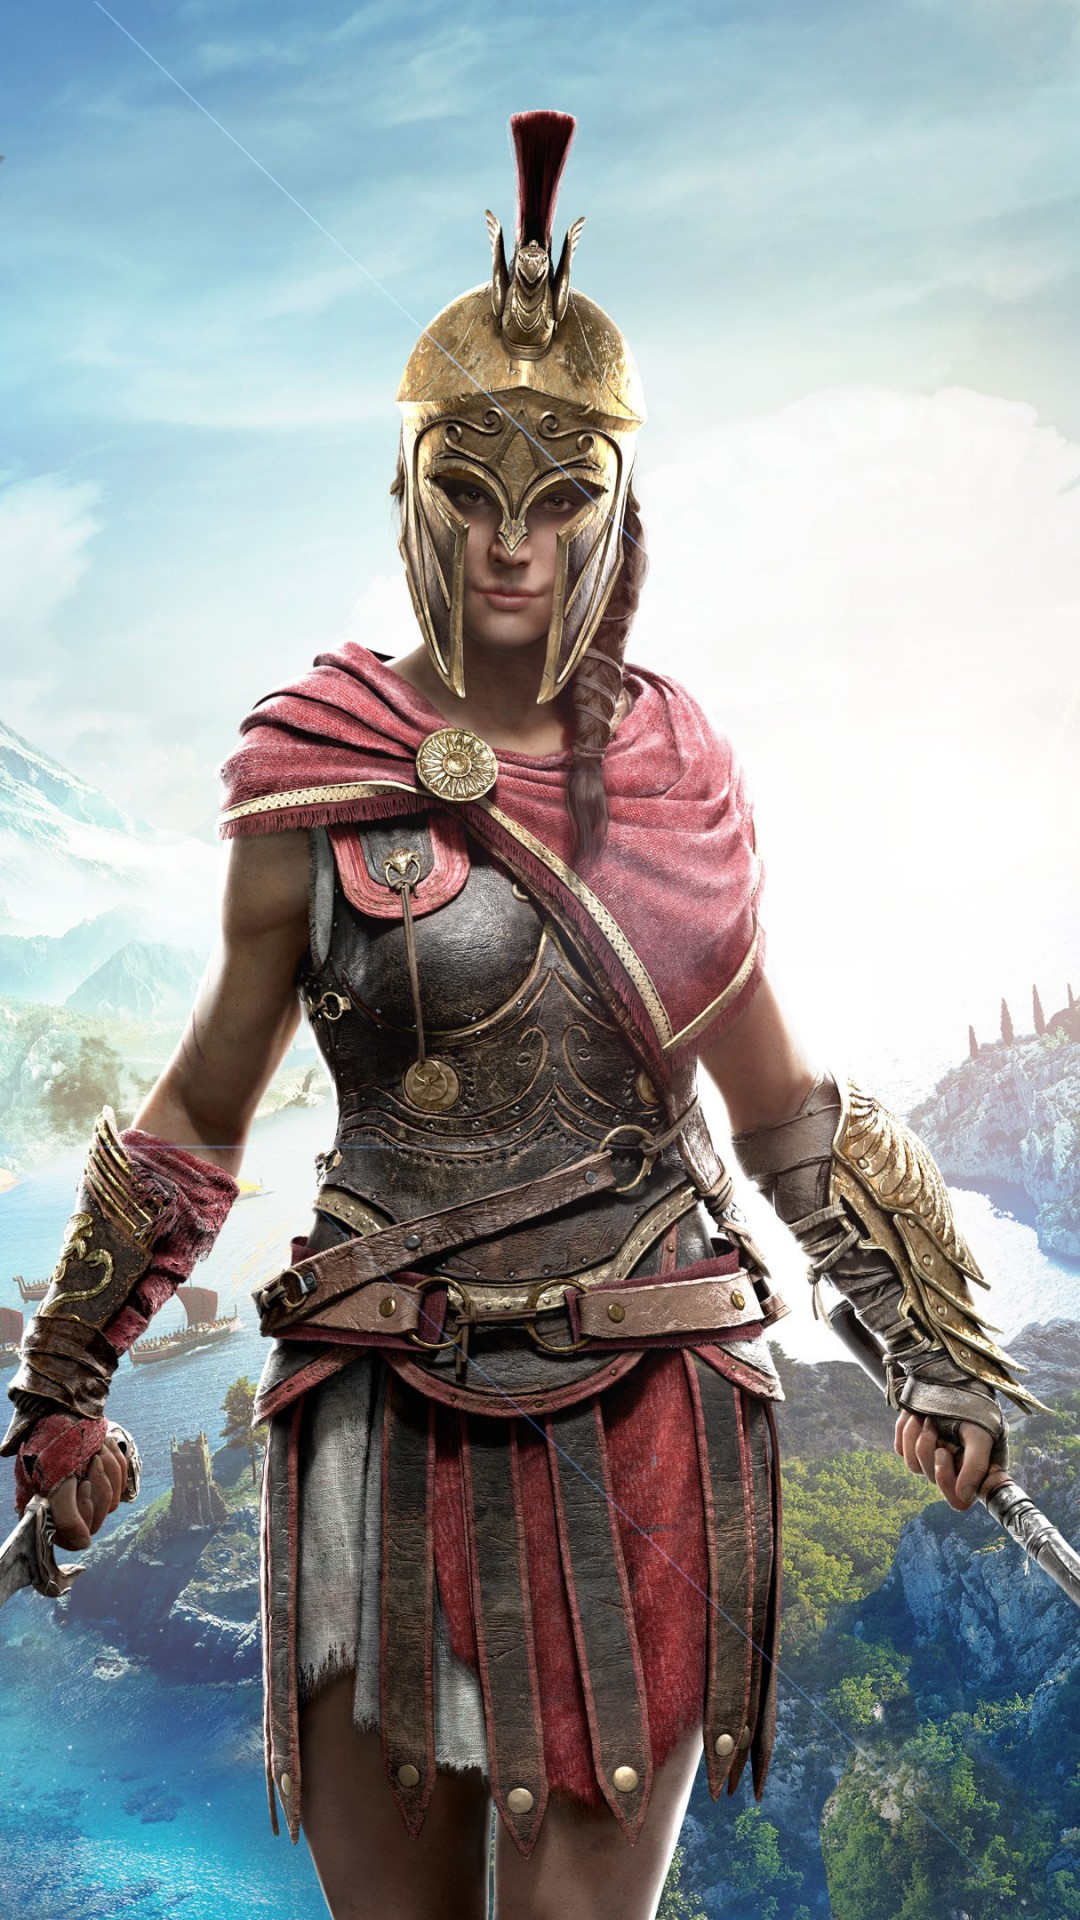 Resolutions 1080 X Assassin S Creed Odyssey Girl 1459920 Hd